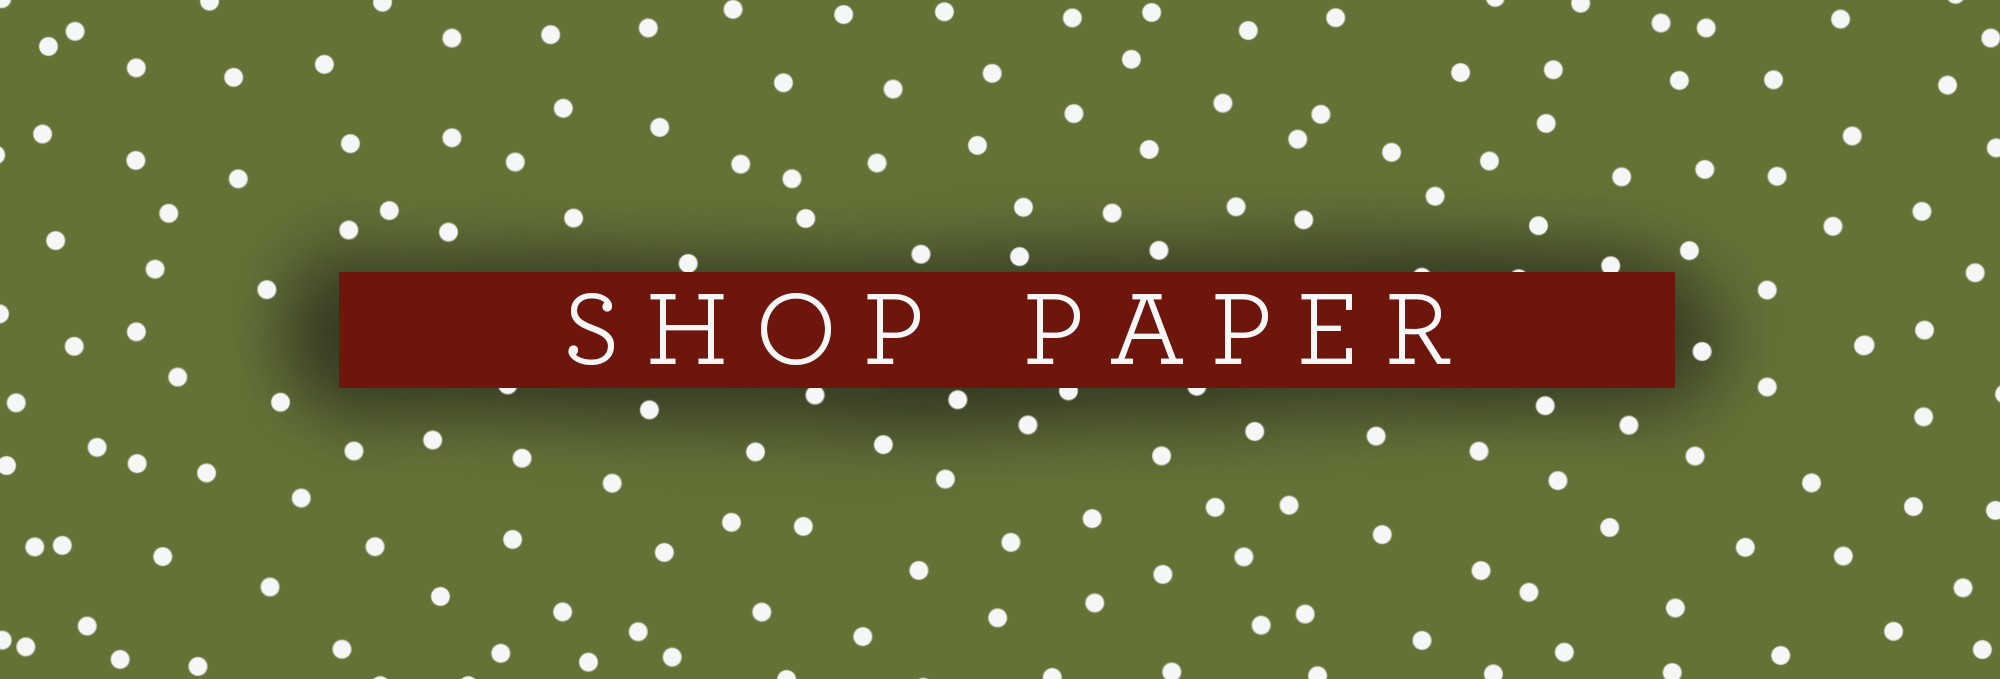 AC-SHOP-PAPER-graphic-